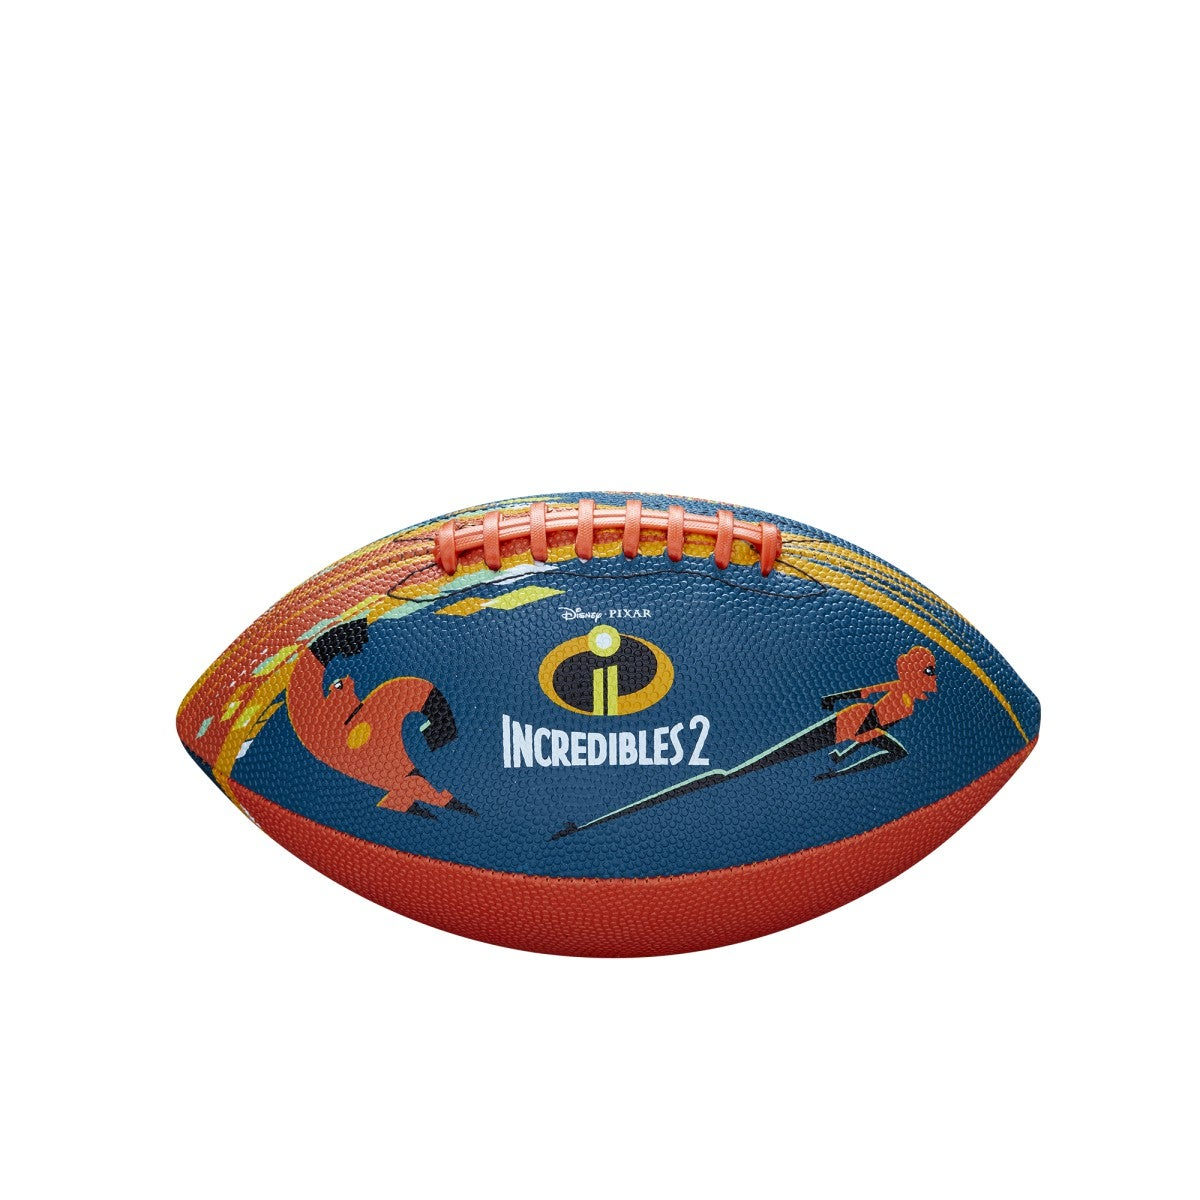 Disney · Pixar Incredibles 2 Characters Junior Football: Mid Mod